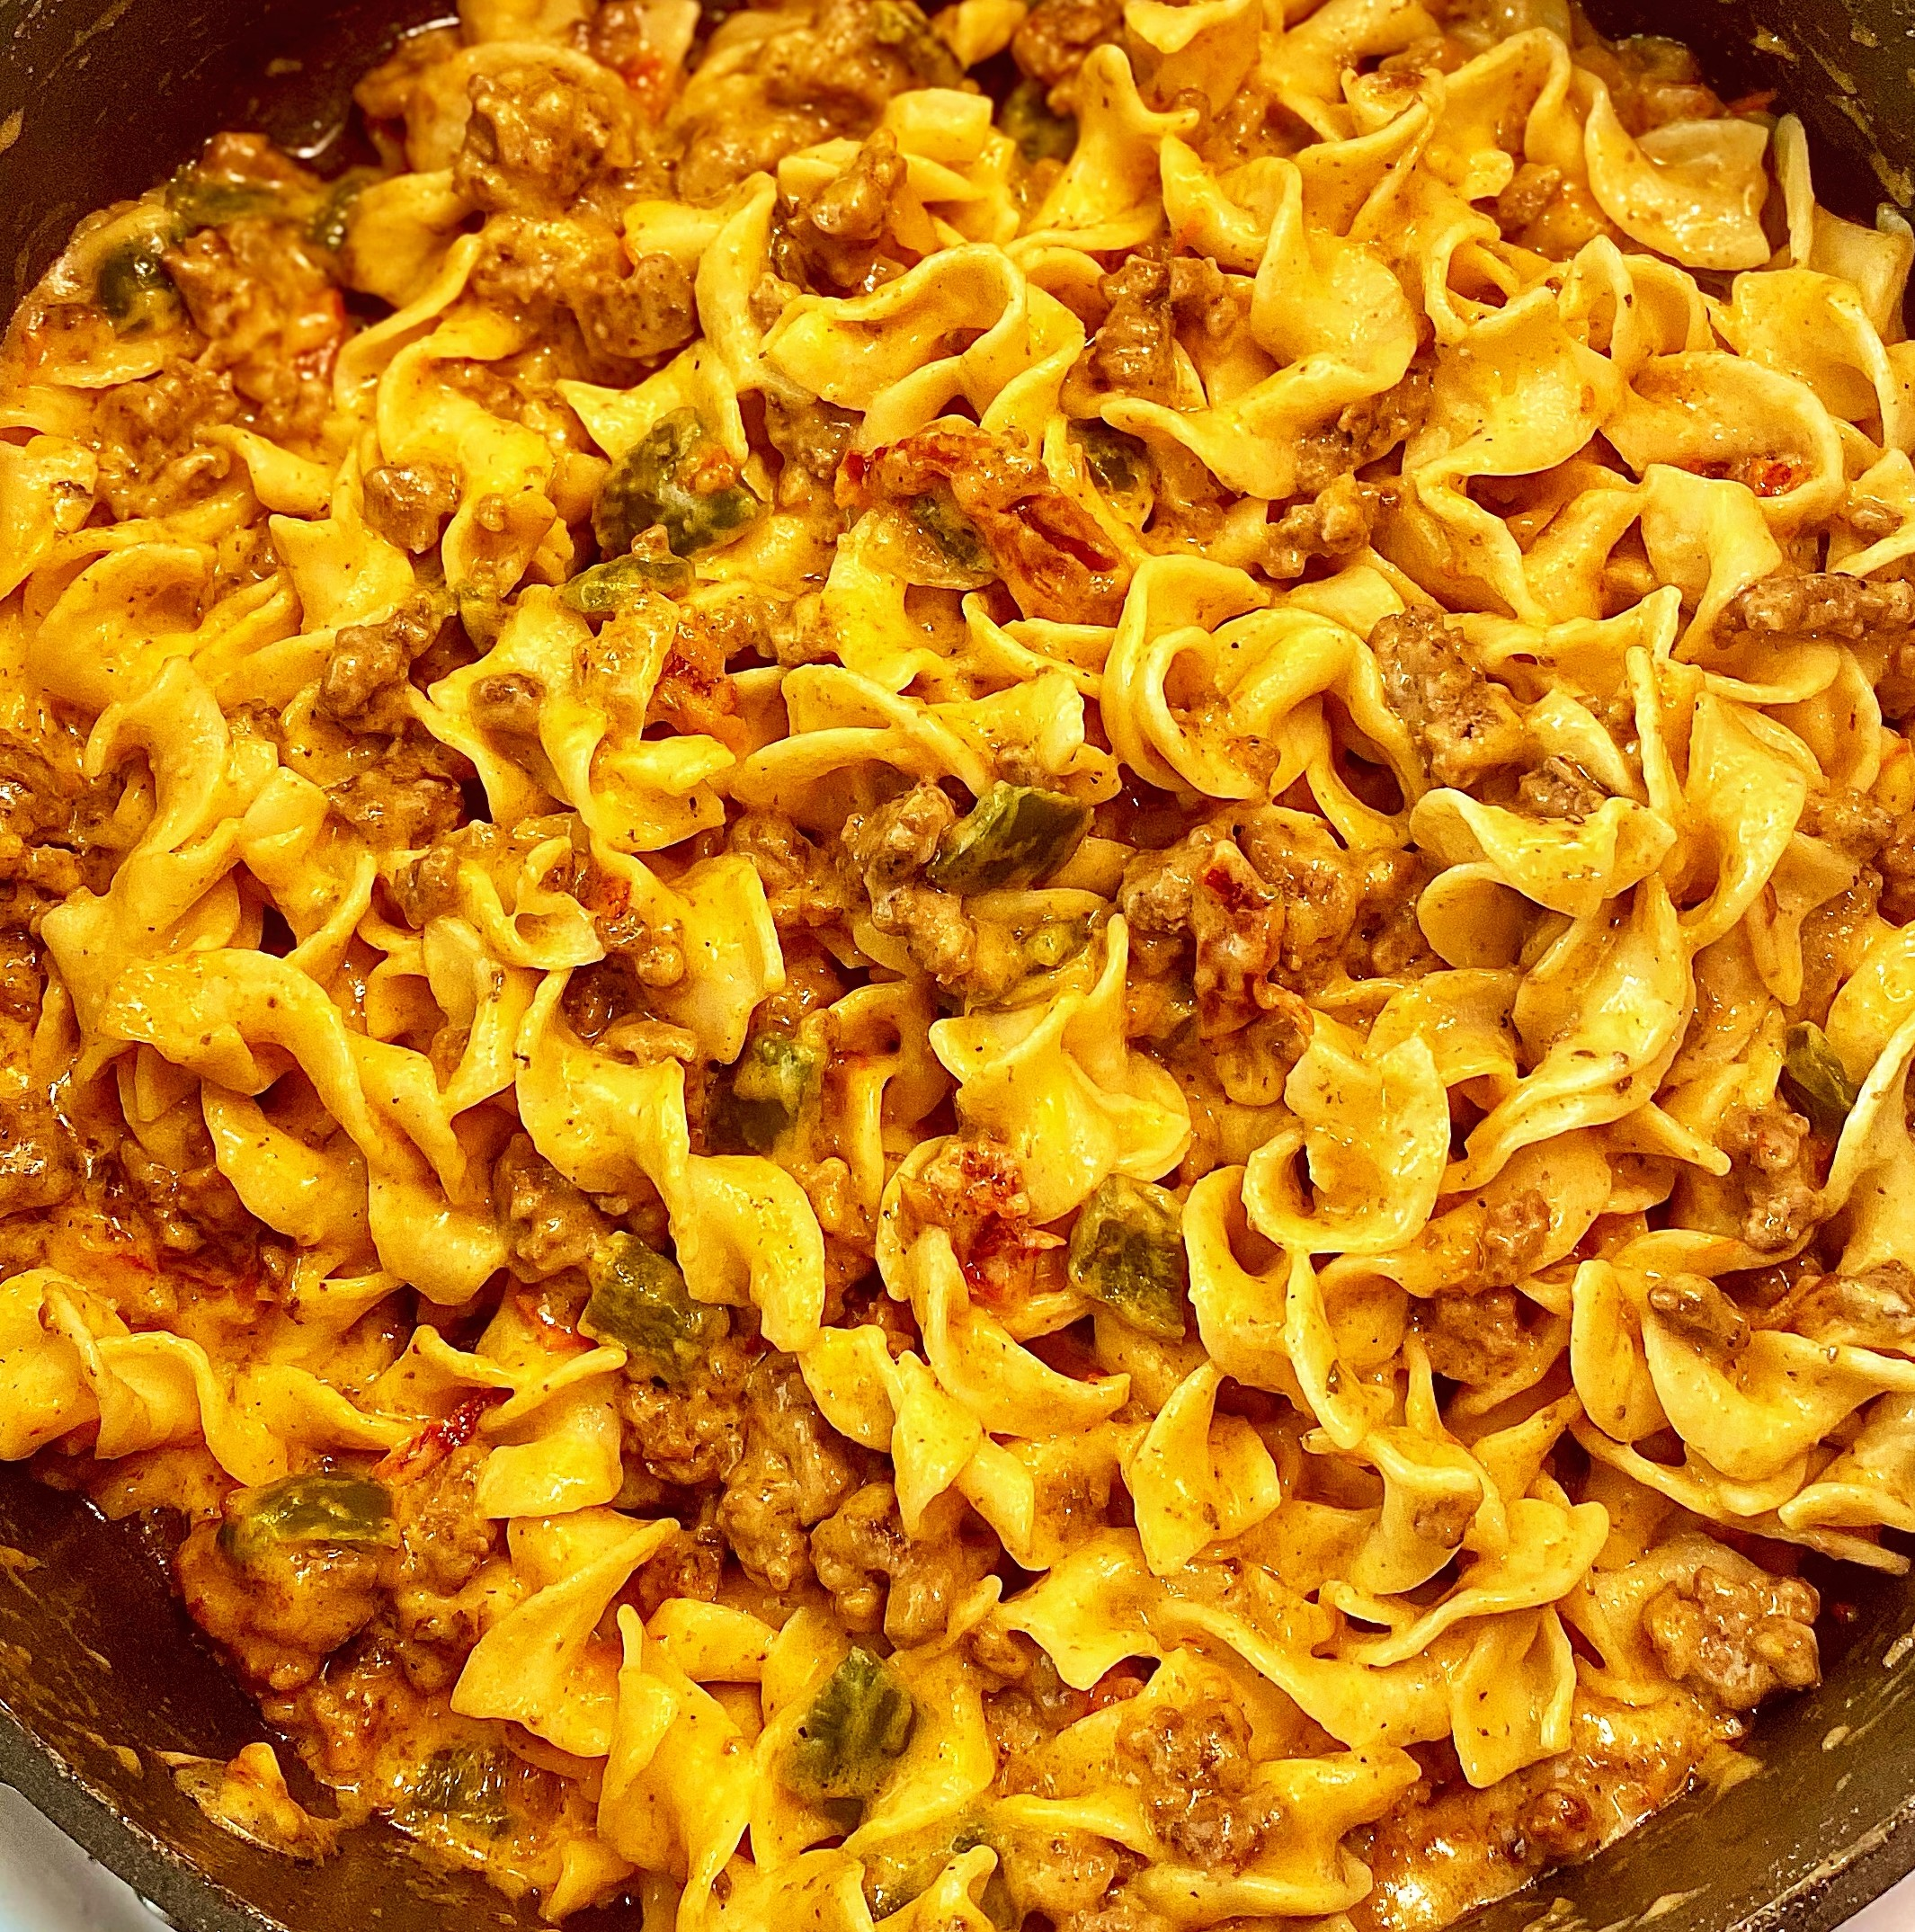 Grandma's Beef and Noodle Casserole